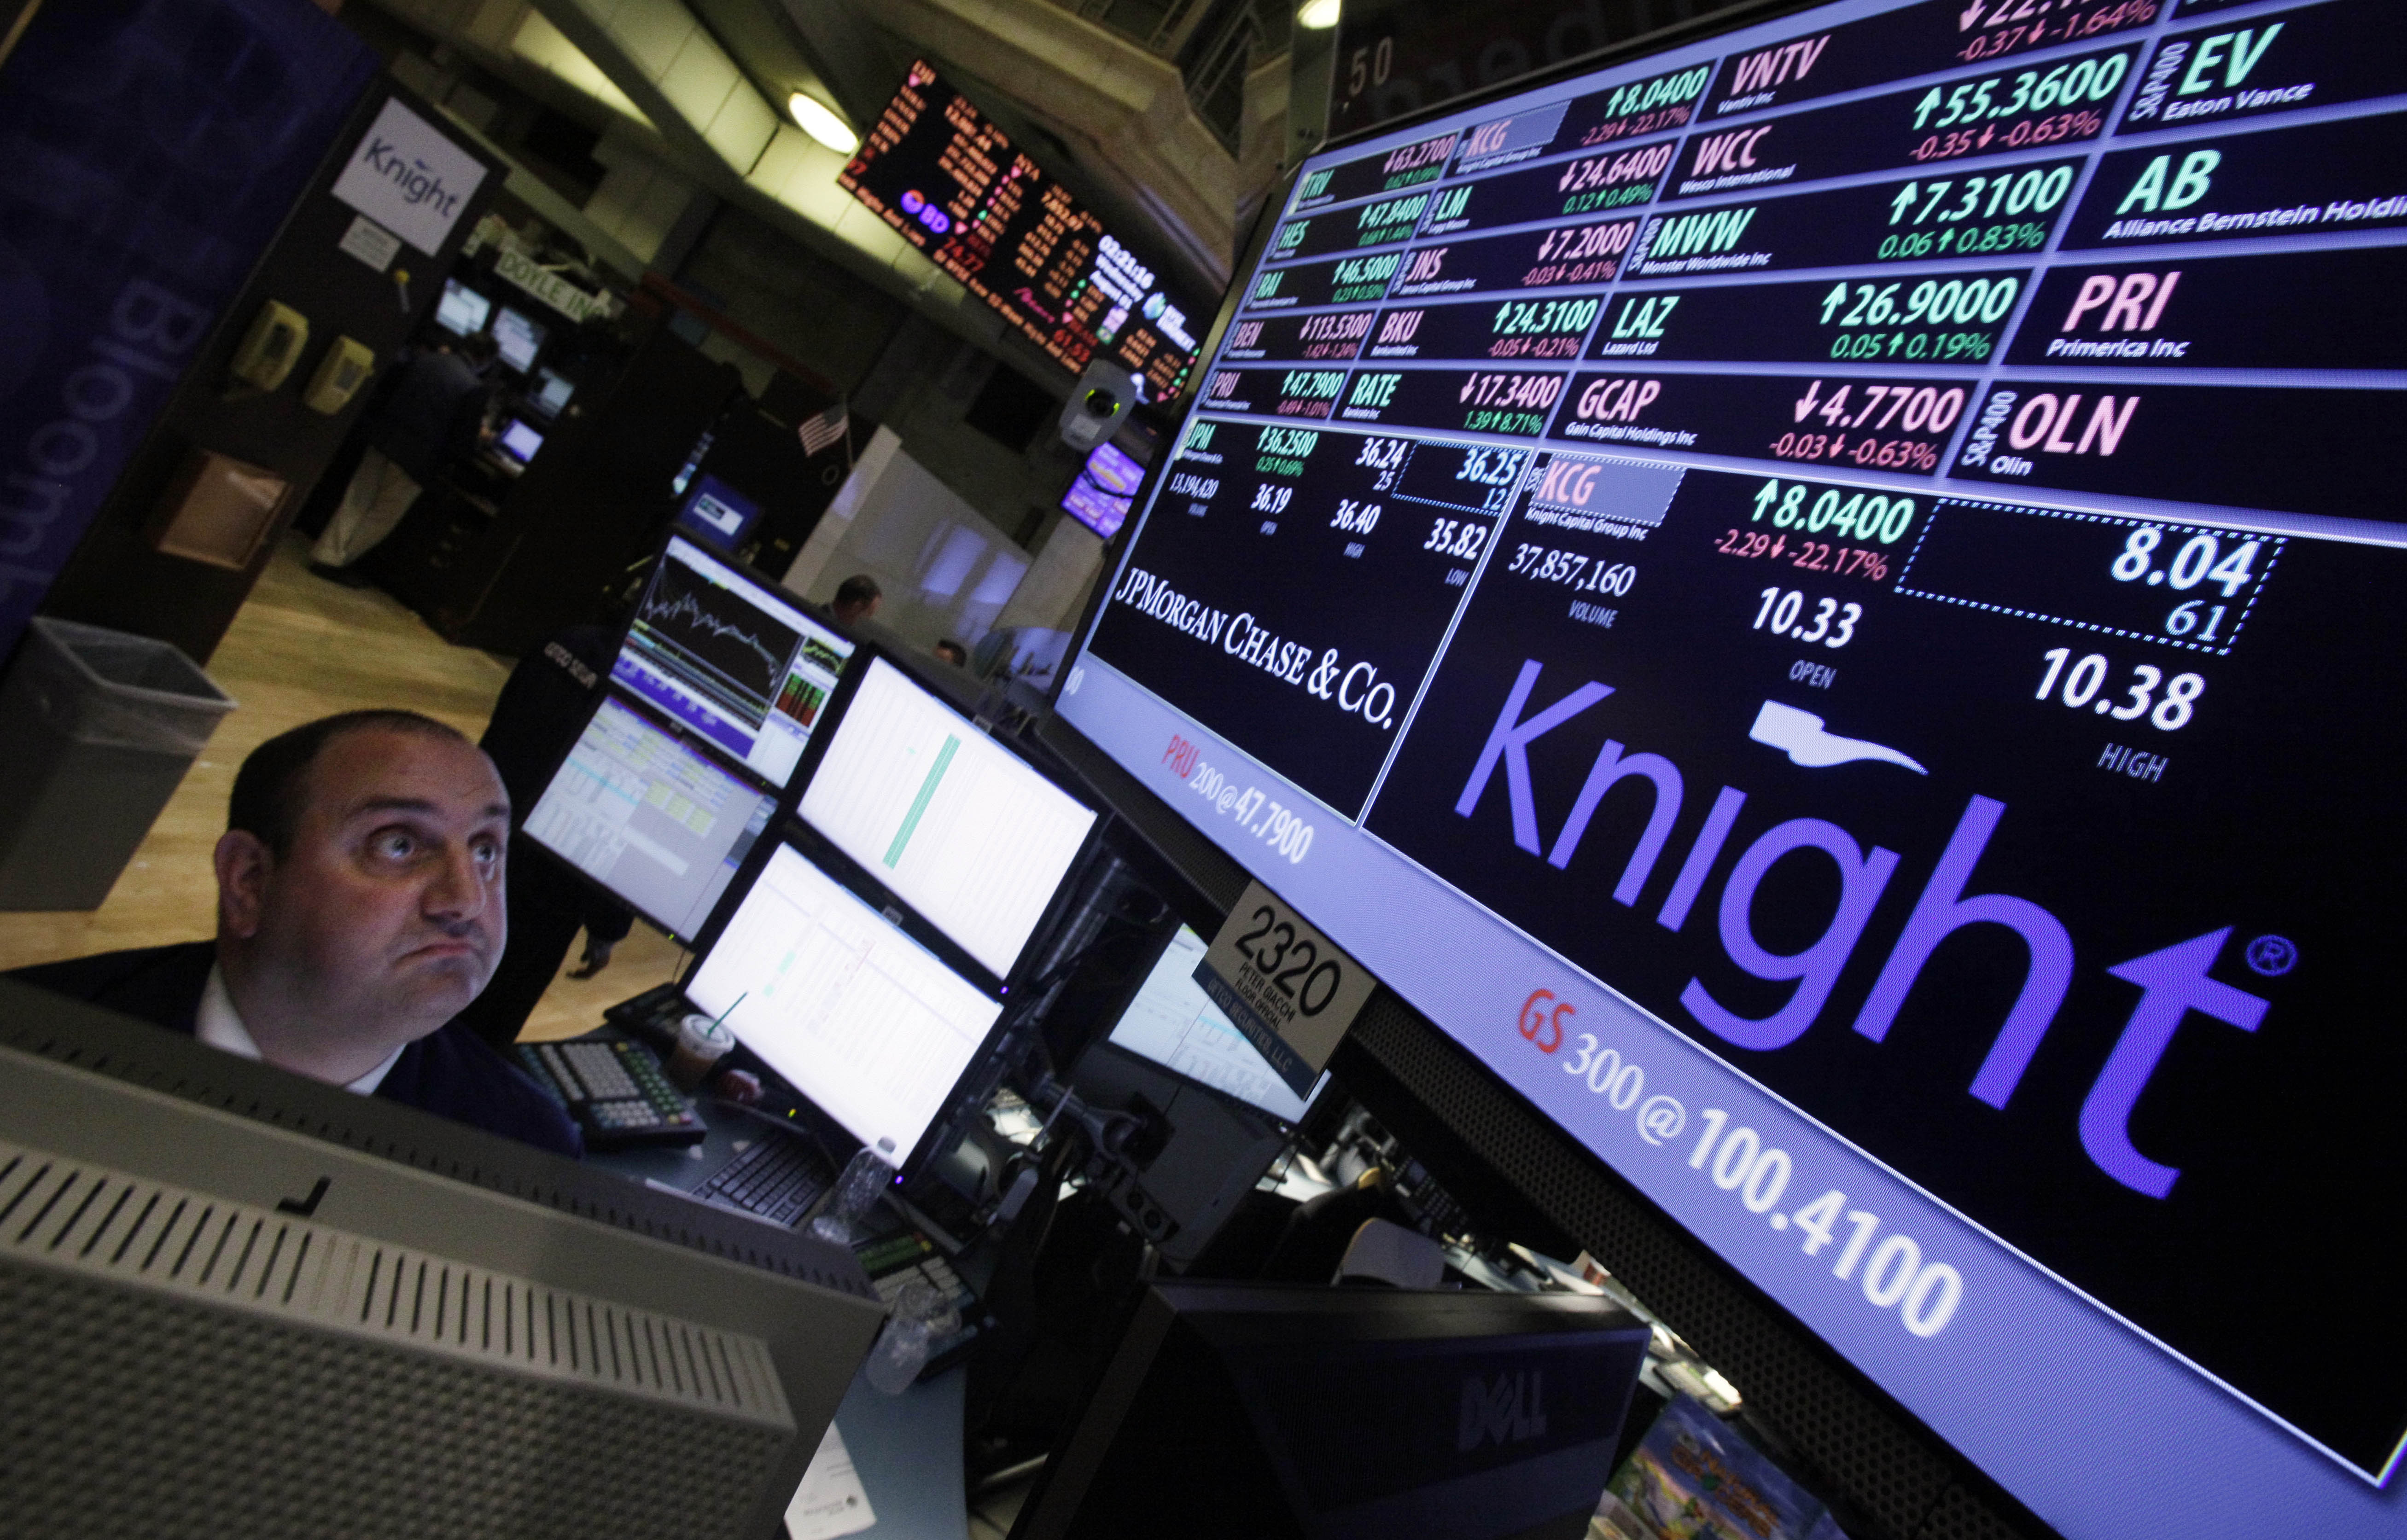 FILE - In this Aug. 1, 2012 file photo, specialist Peter Giacchi looks at the price of Knight at his post on the floor of the New York Stock Exchange. Knight Capital announced Monday, Aug. 6, 2012, that investors have agreed to supply it with $400 million in financing, which would help the trading firm stay in business after last week's disastrous software glitch that shook U.S. stock trading and jeopardized its future. (AP Photo/Richard Drew, File)